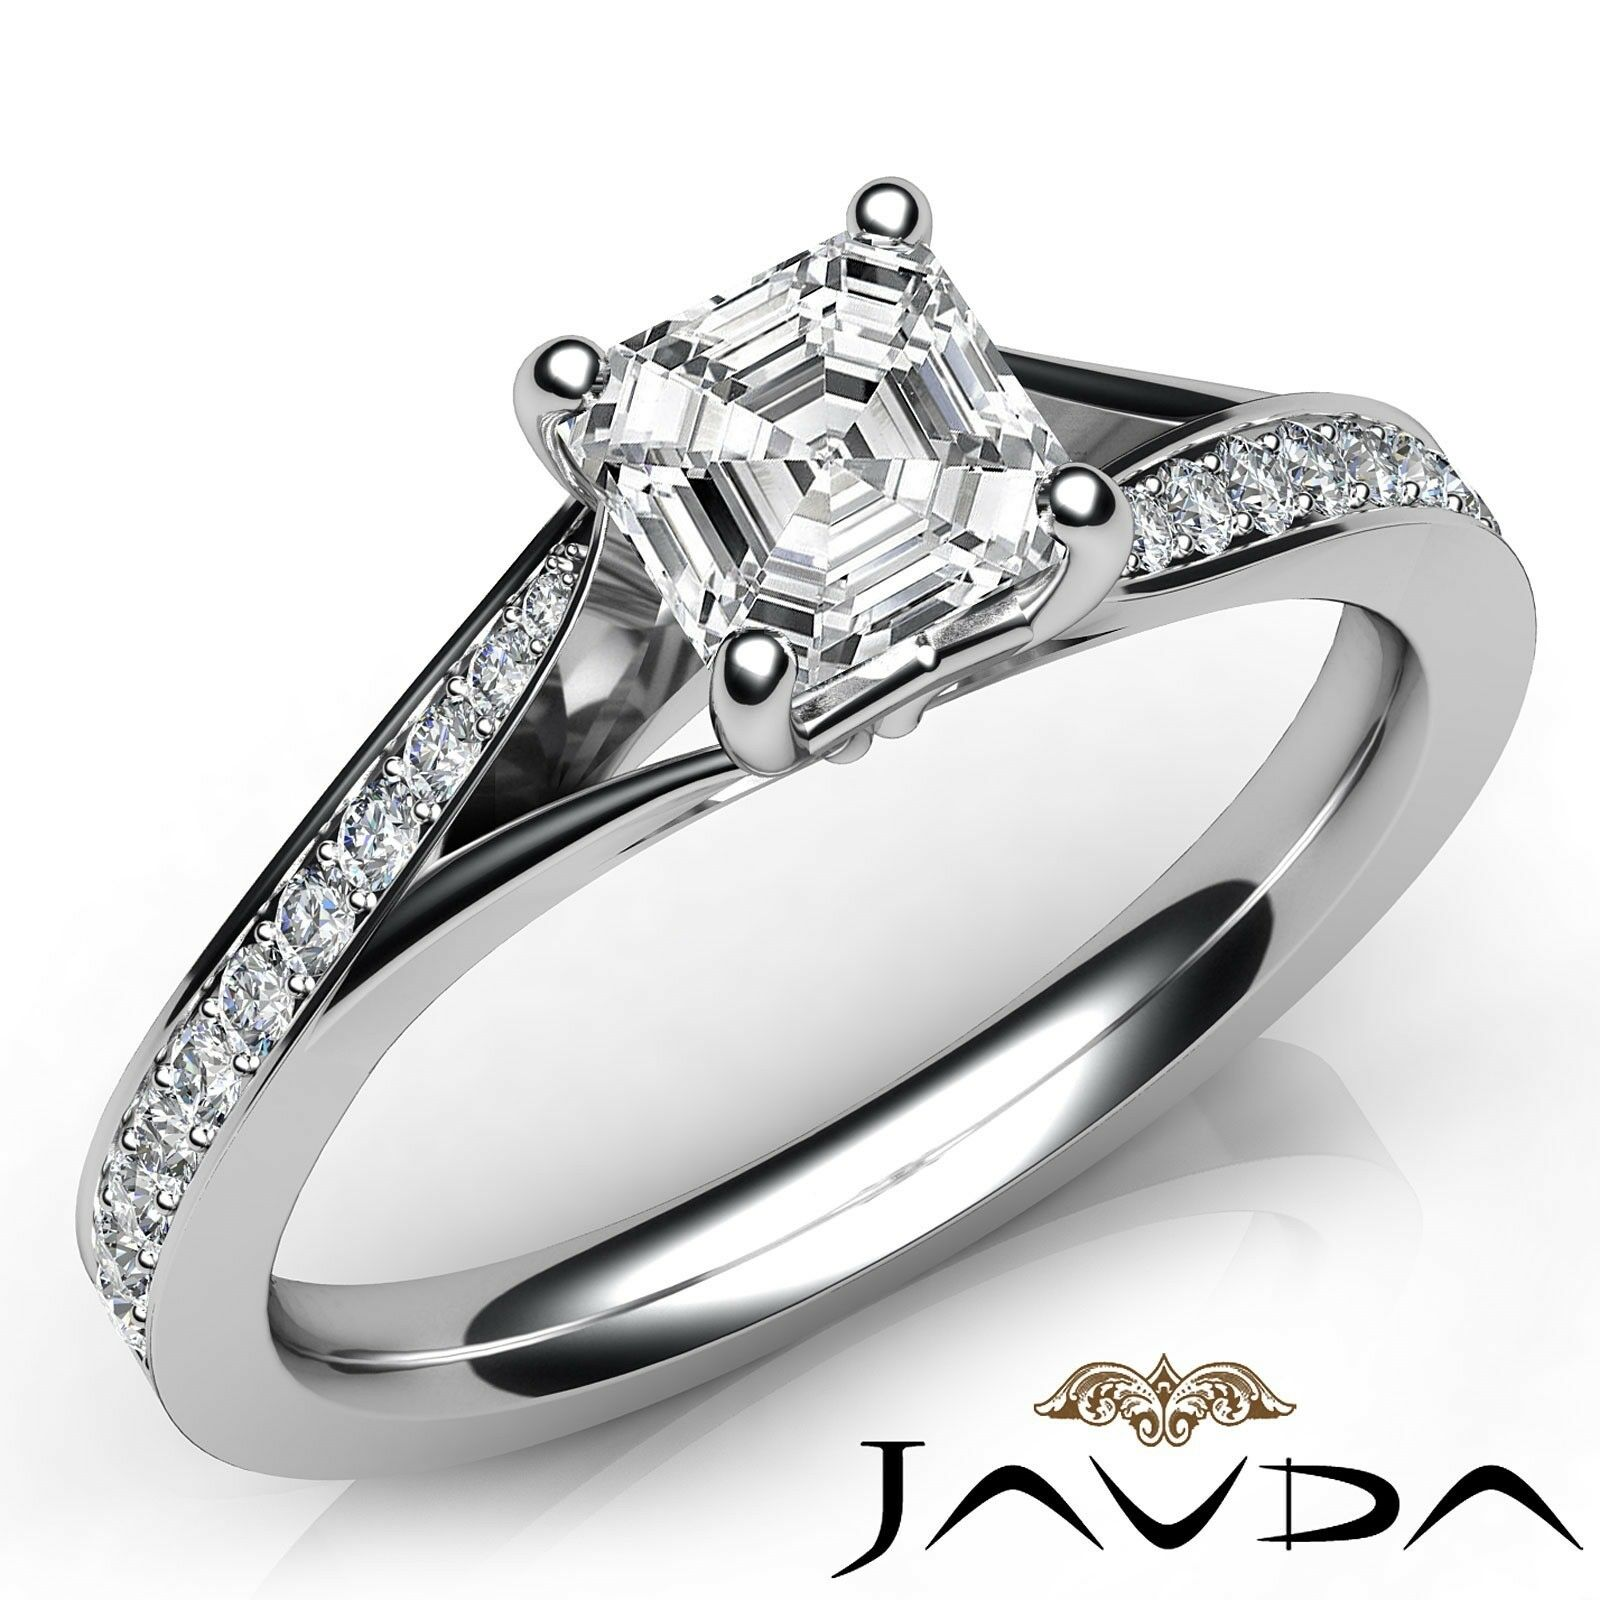 0.96ctw Knife Edge Asscher Diamond Engagement Ring GIA D-VS1 White Gold Women